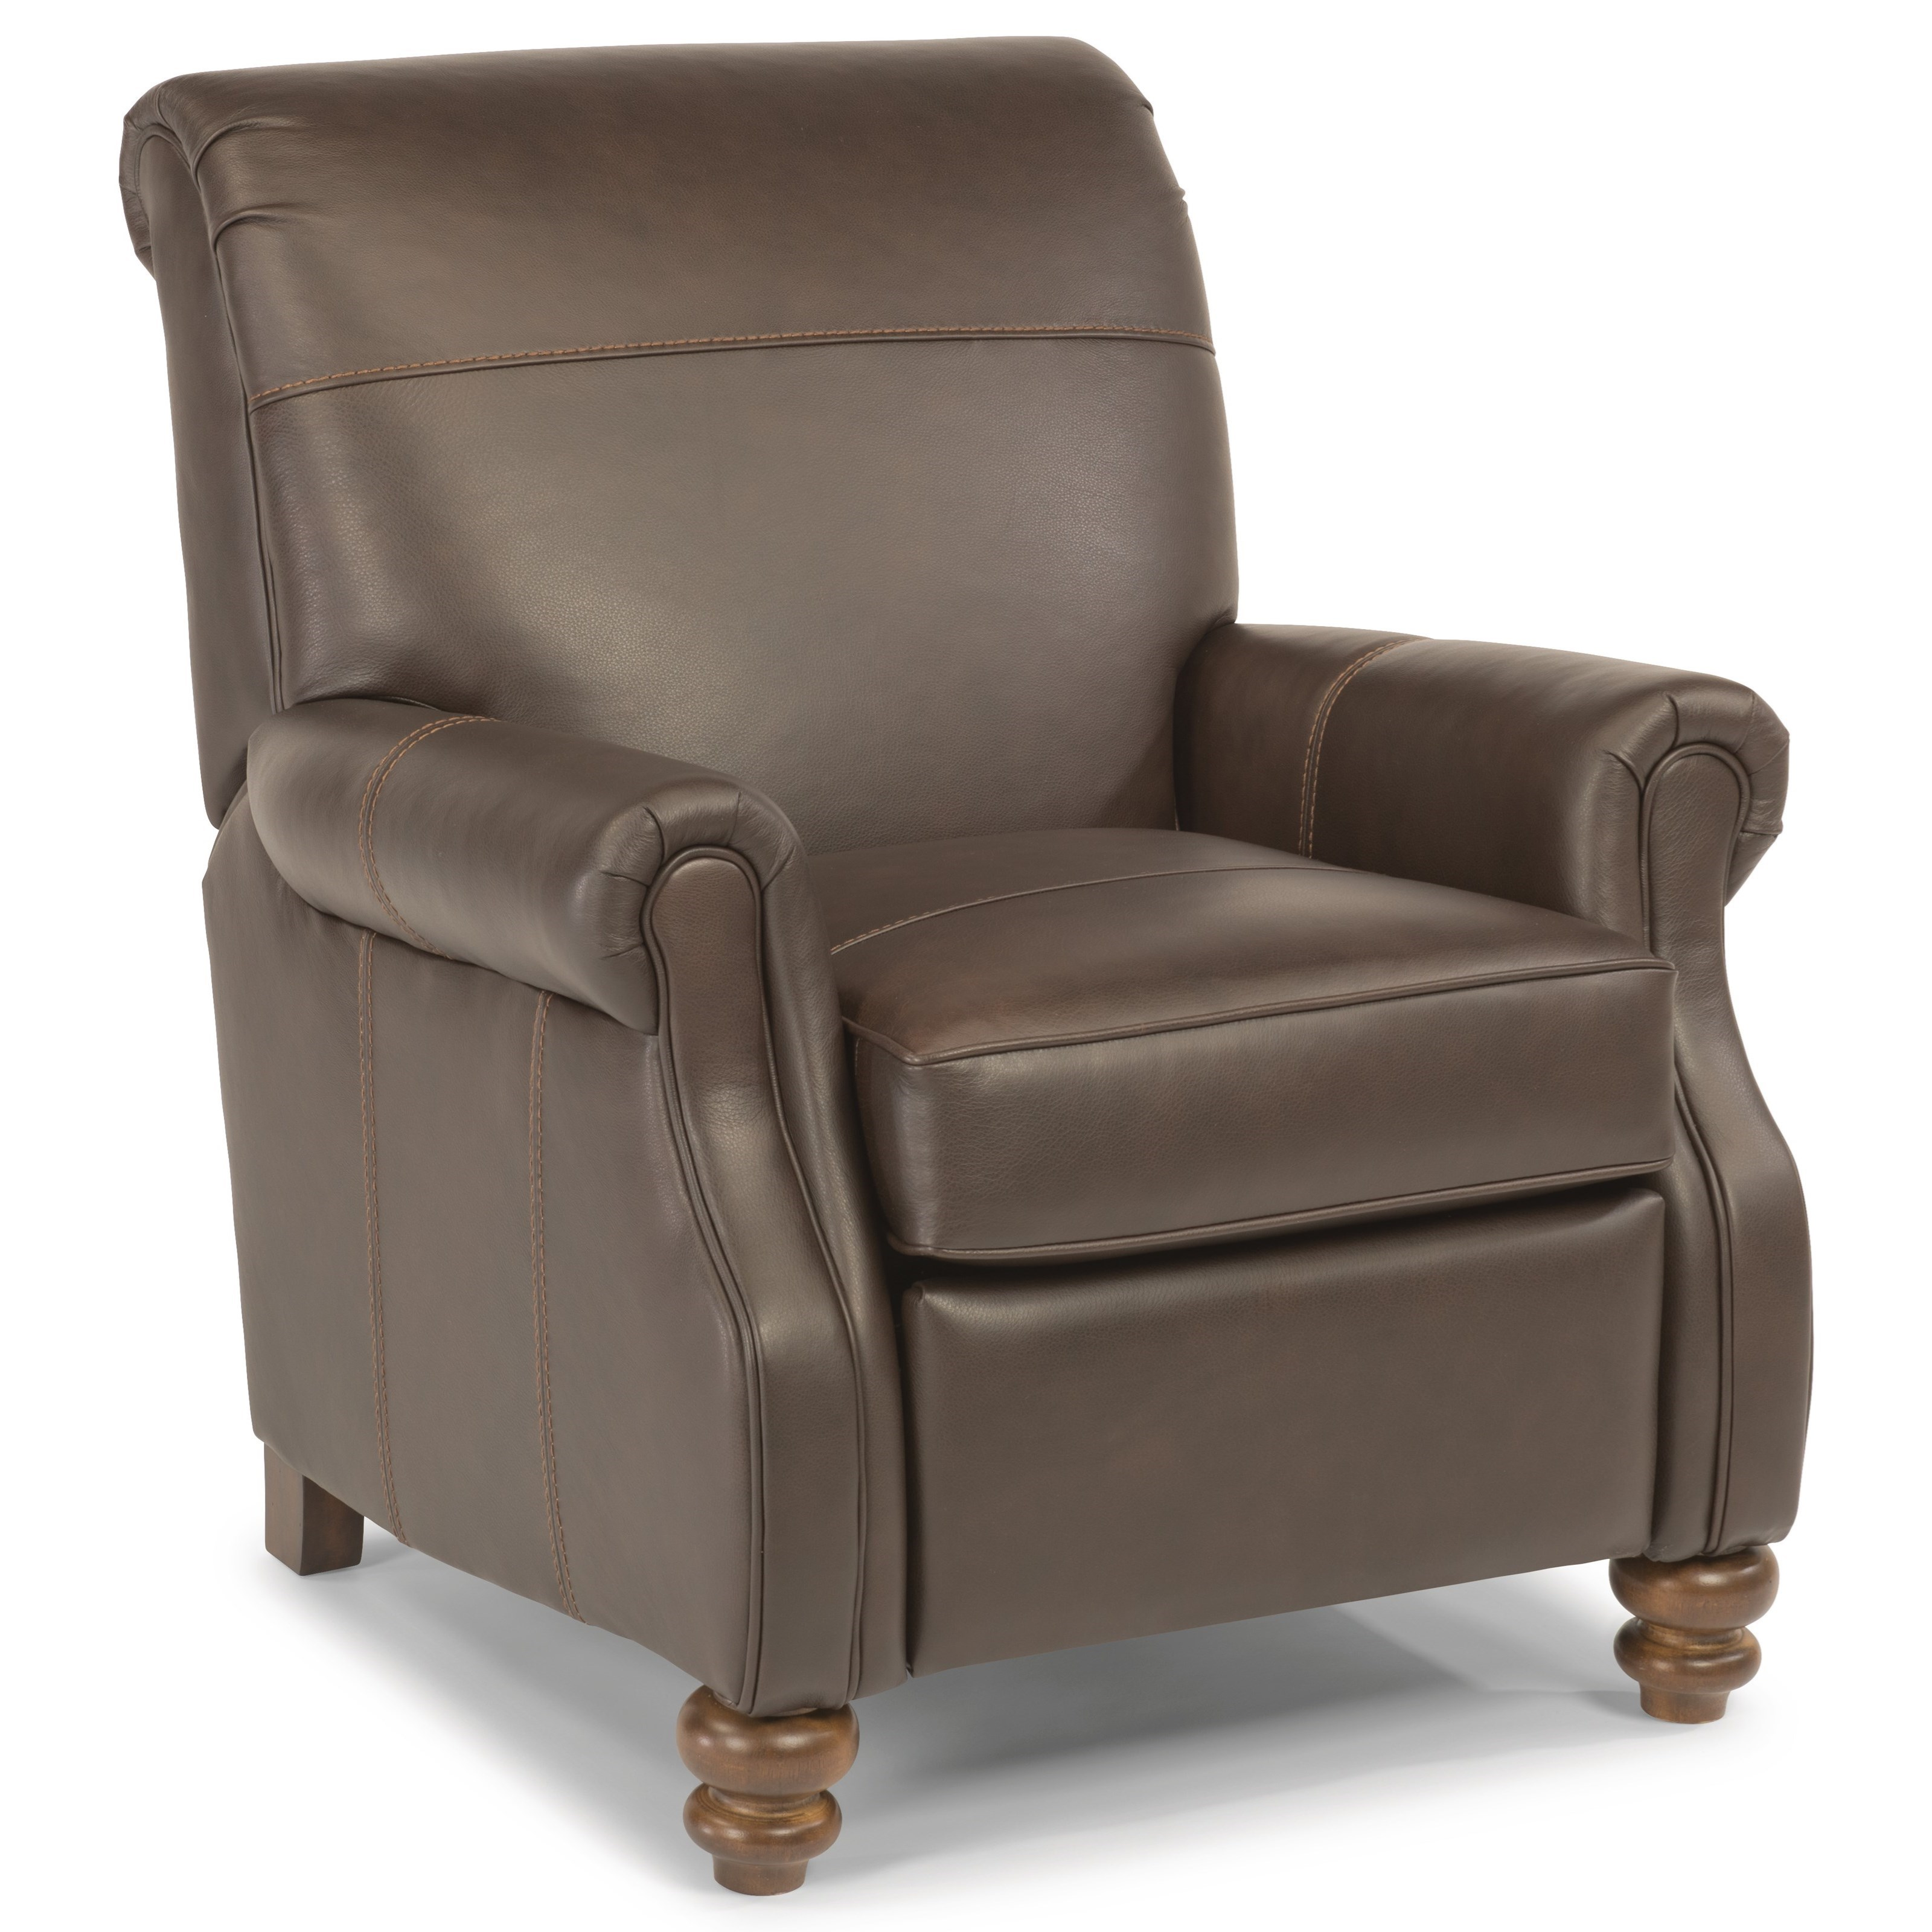 Bay Bridge Power High Leg Recliner by Flexsteel at Virginia Furniture Market